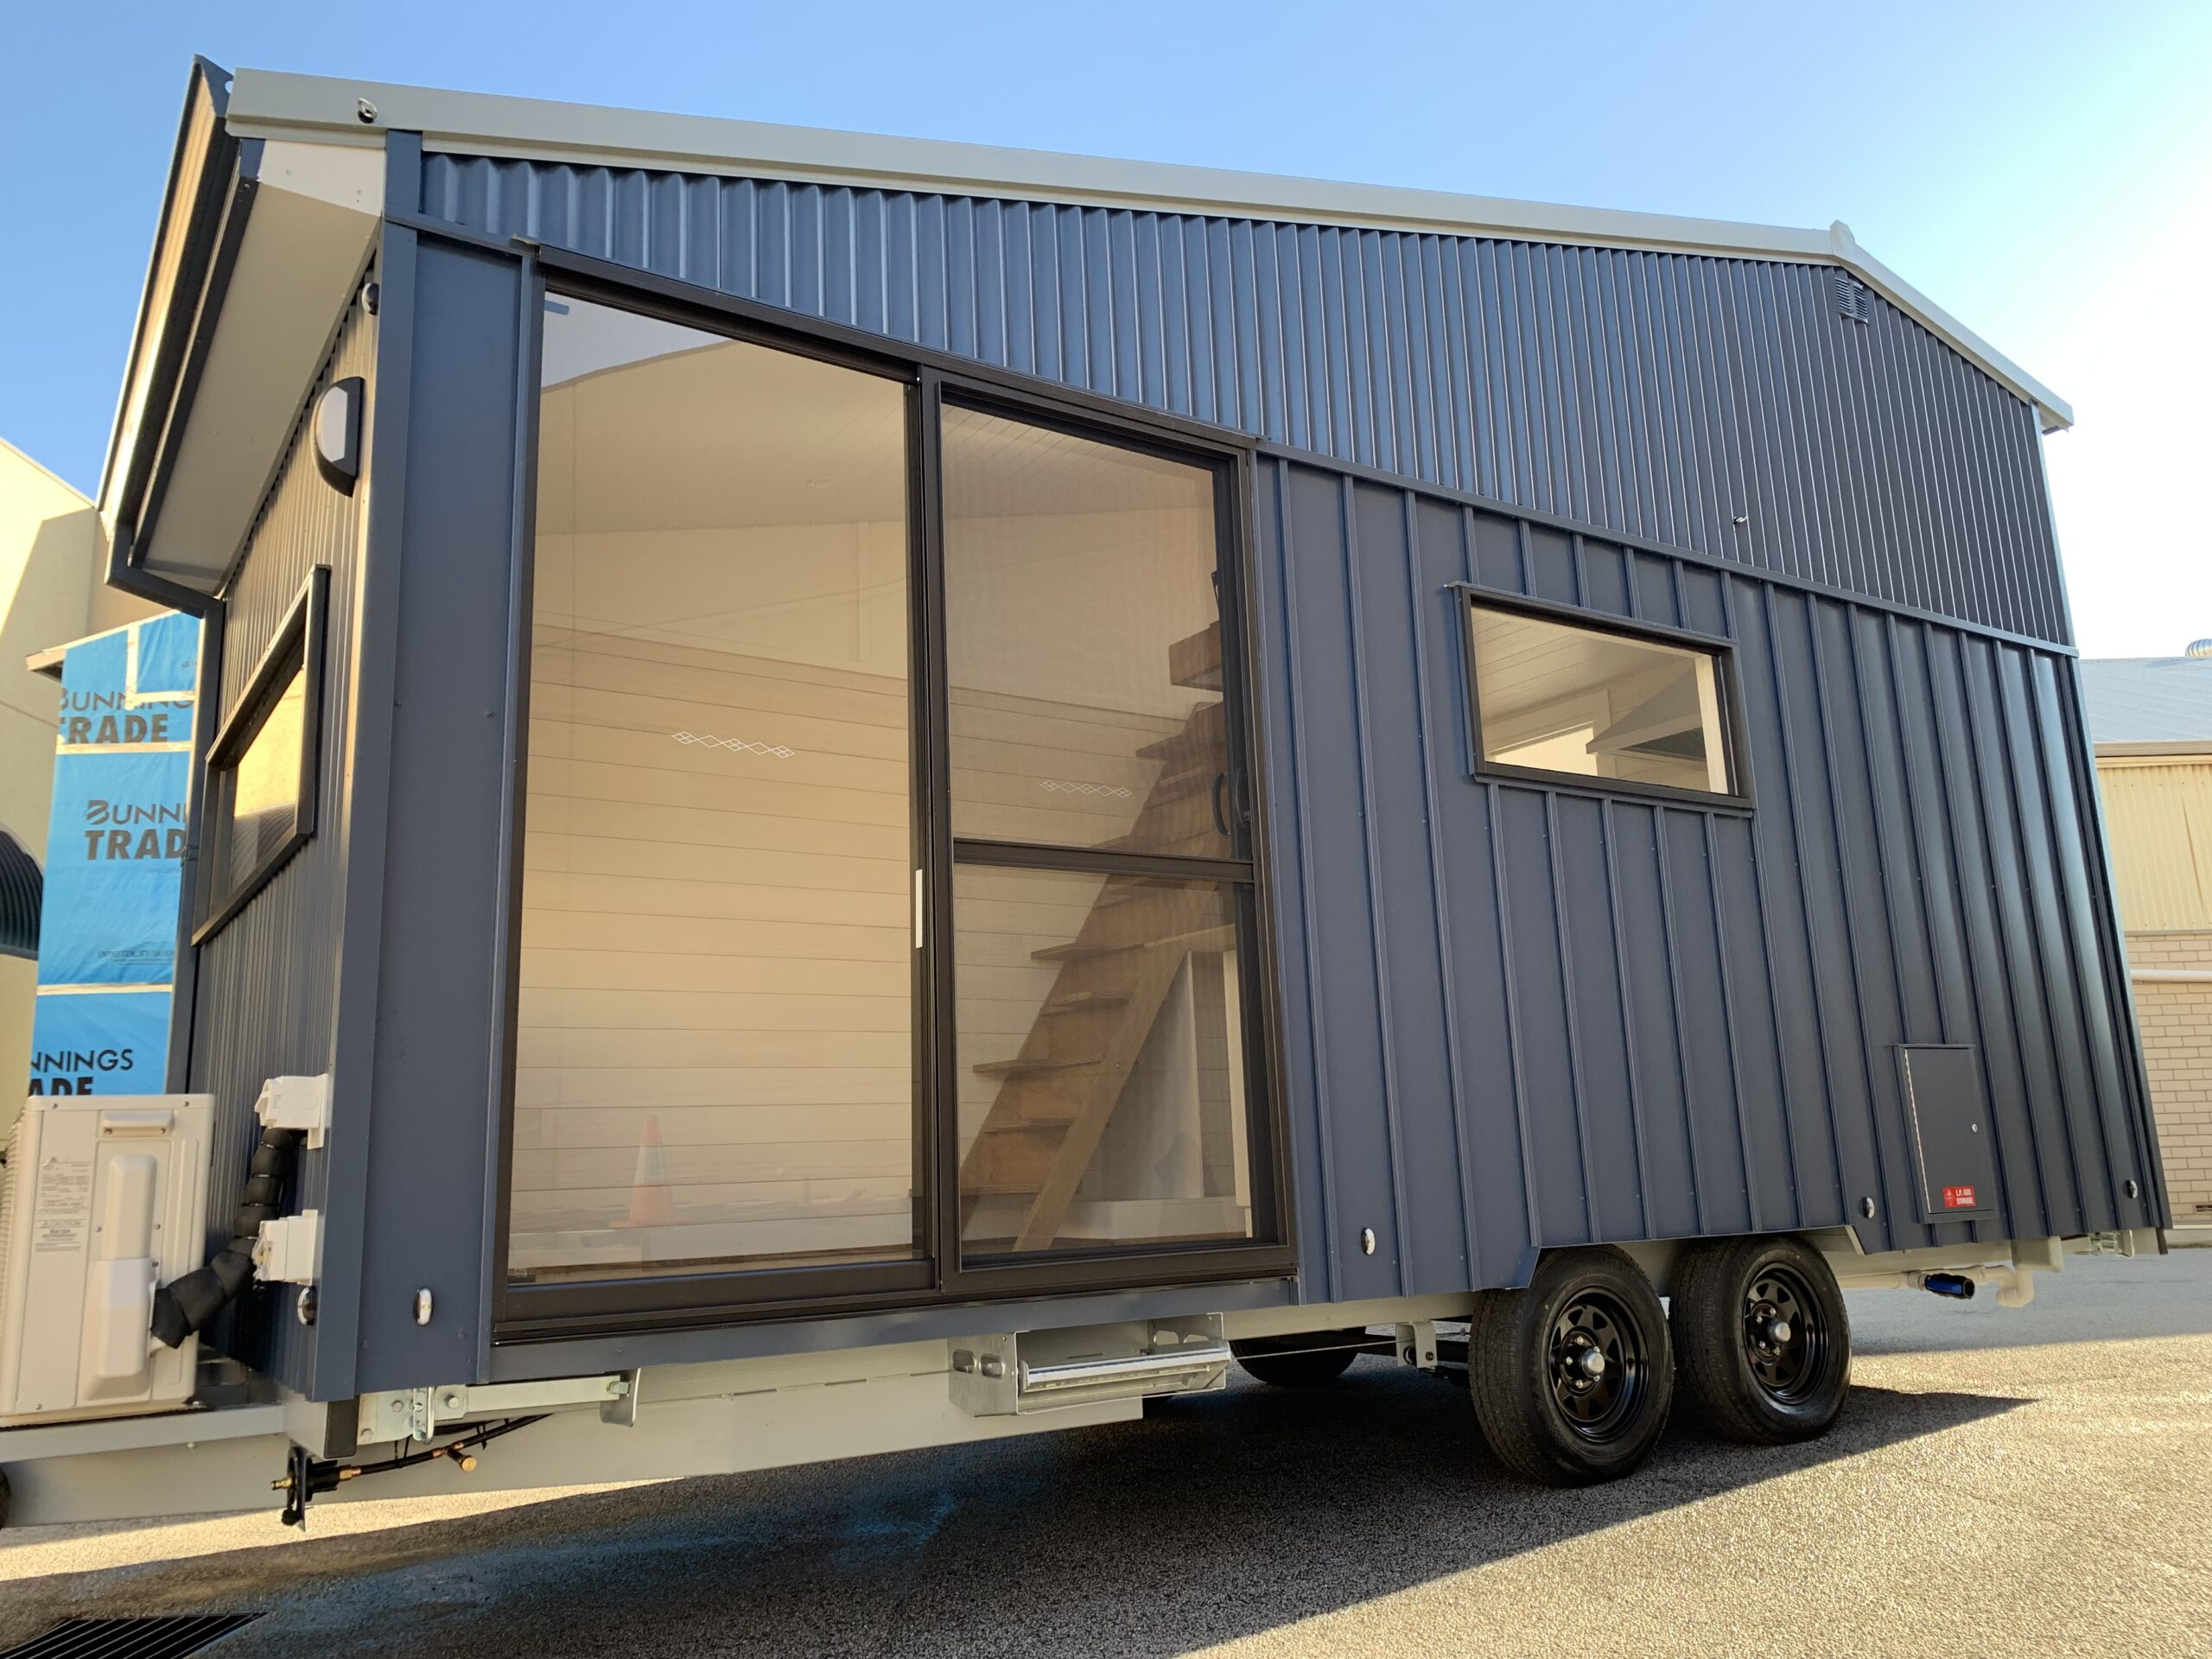 The Adventire Tiny Home by Tiny Homes Perth